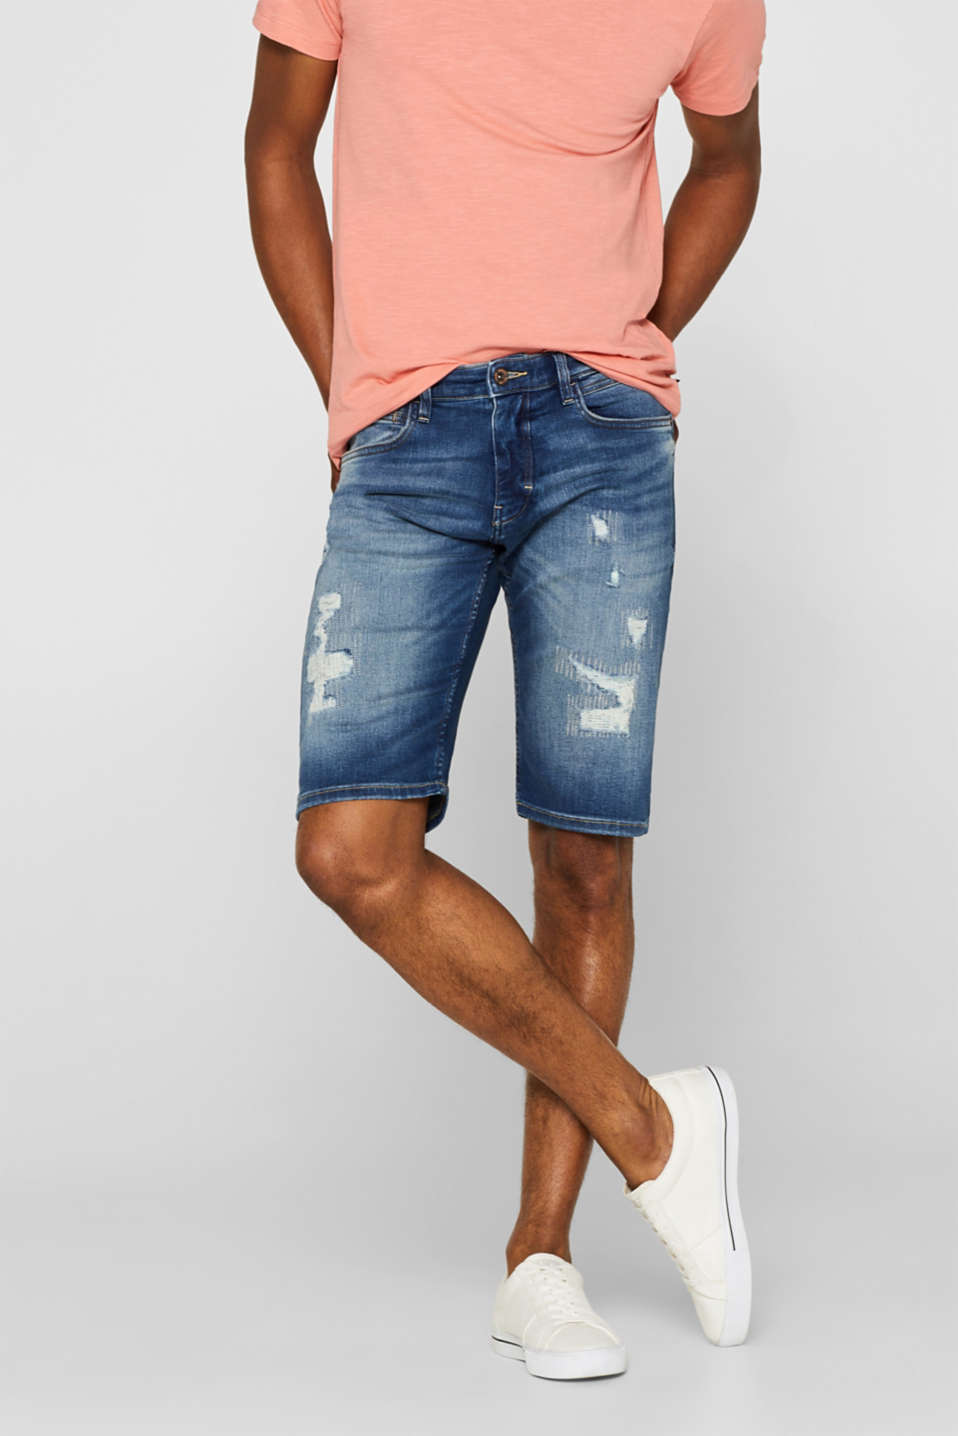 Esprit - Super stretchy denim shorts with distressed look